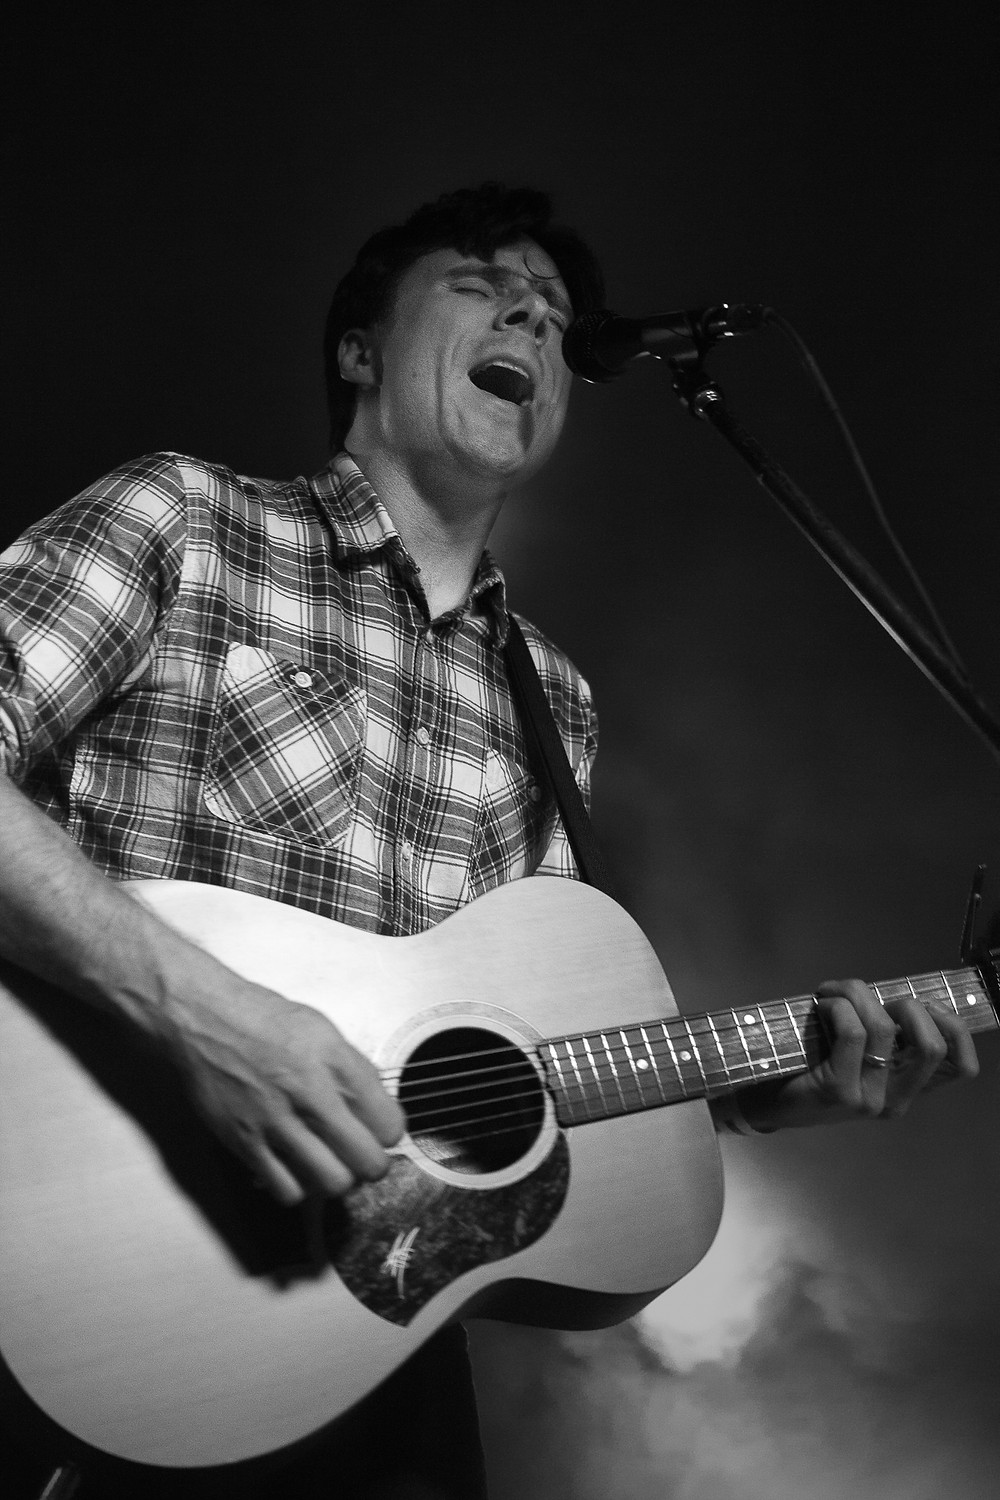 Jim Adkins, Jimmy Eat World, The Wayfarer, Costa Mesa, Acoustic, Concert, Concert Photography, Live Music